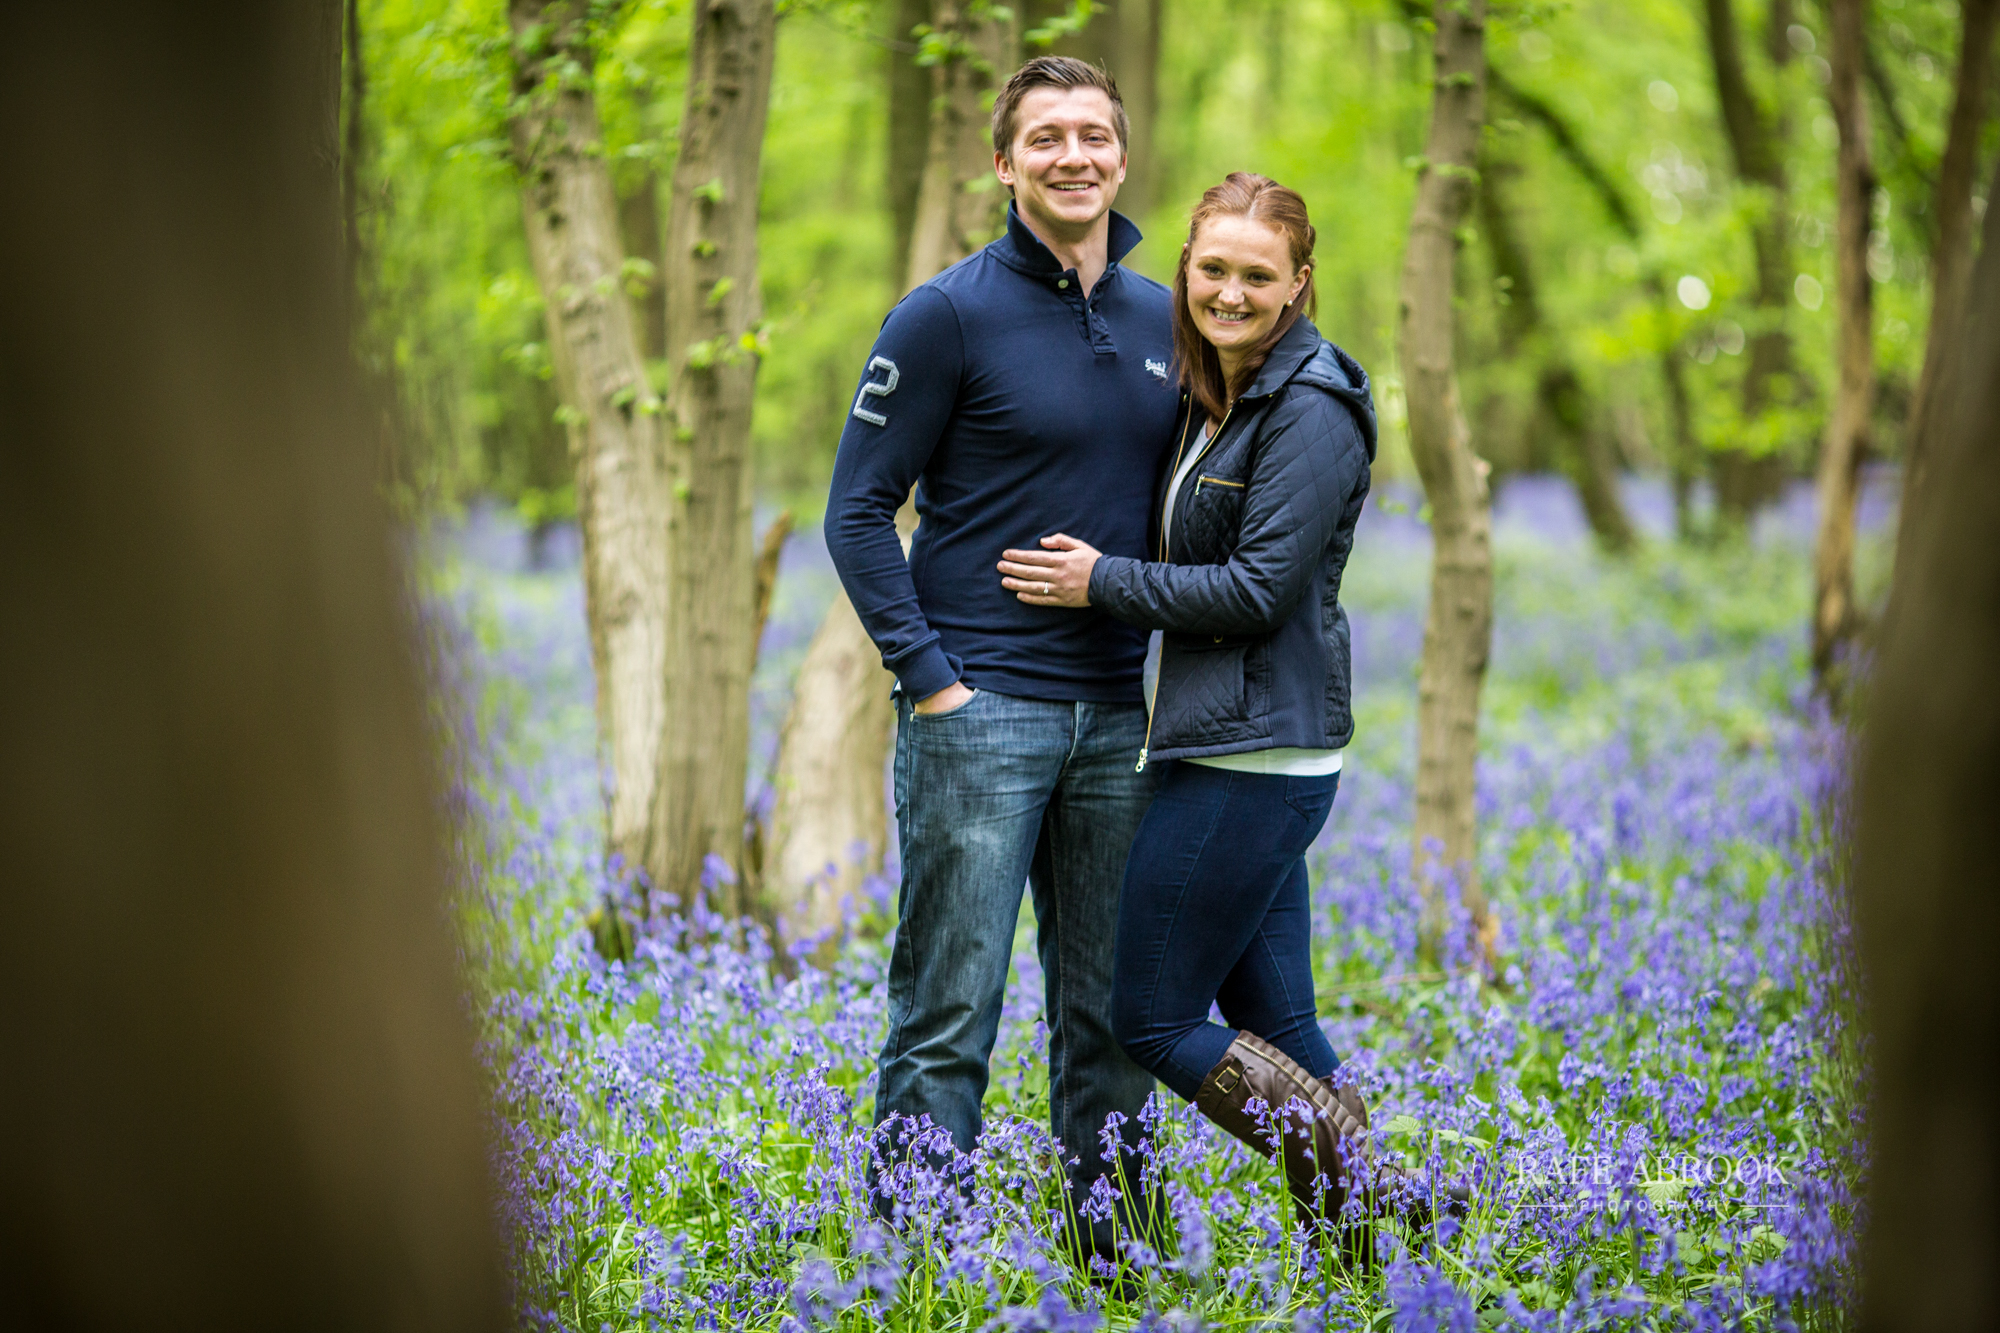 george & amelia heartwood forest st albans hertfordshire engagement shoot-1021.jpg